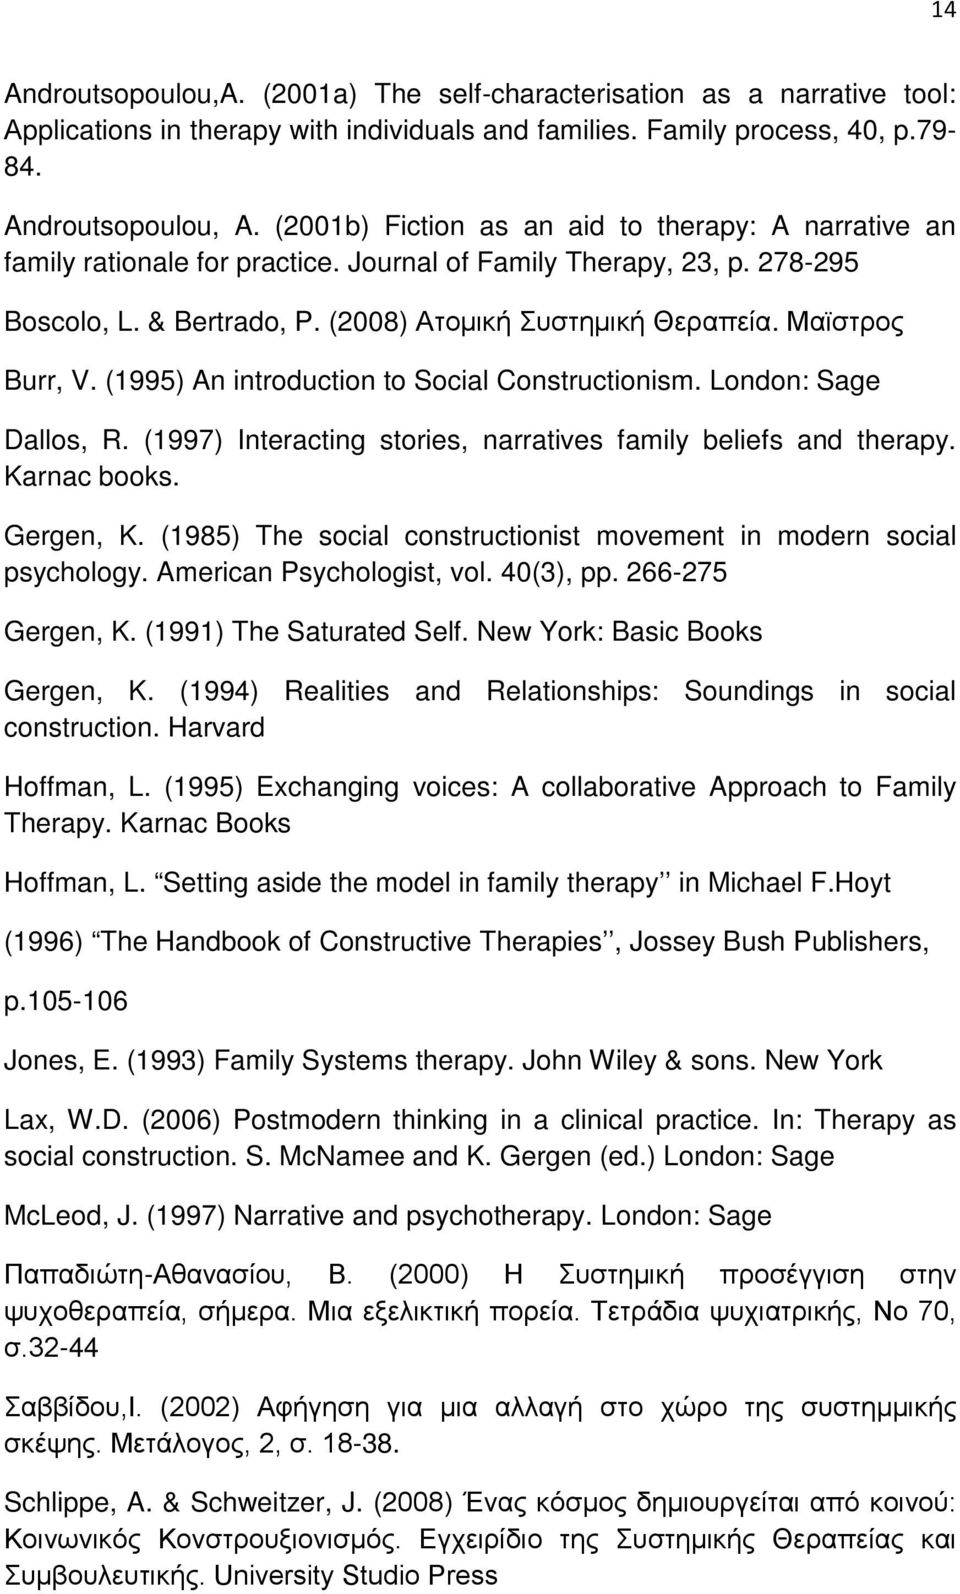 Μαϊστρος Burr, V. (1995) An introduction to Social Constructionism. London: Sage Dallos, R. (1997) Interacting stories, narratives family beliefs and therapy. Karnac books. Gergen, K.